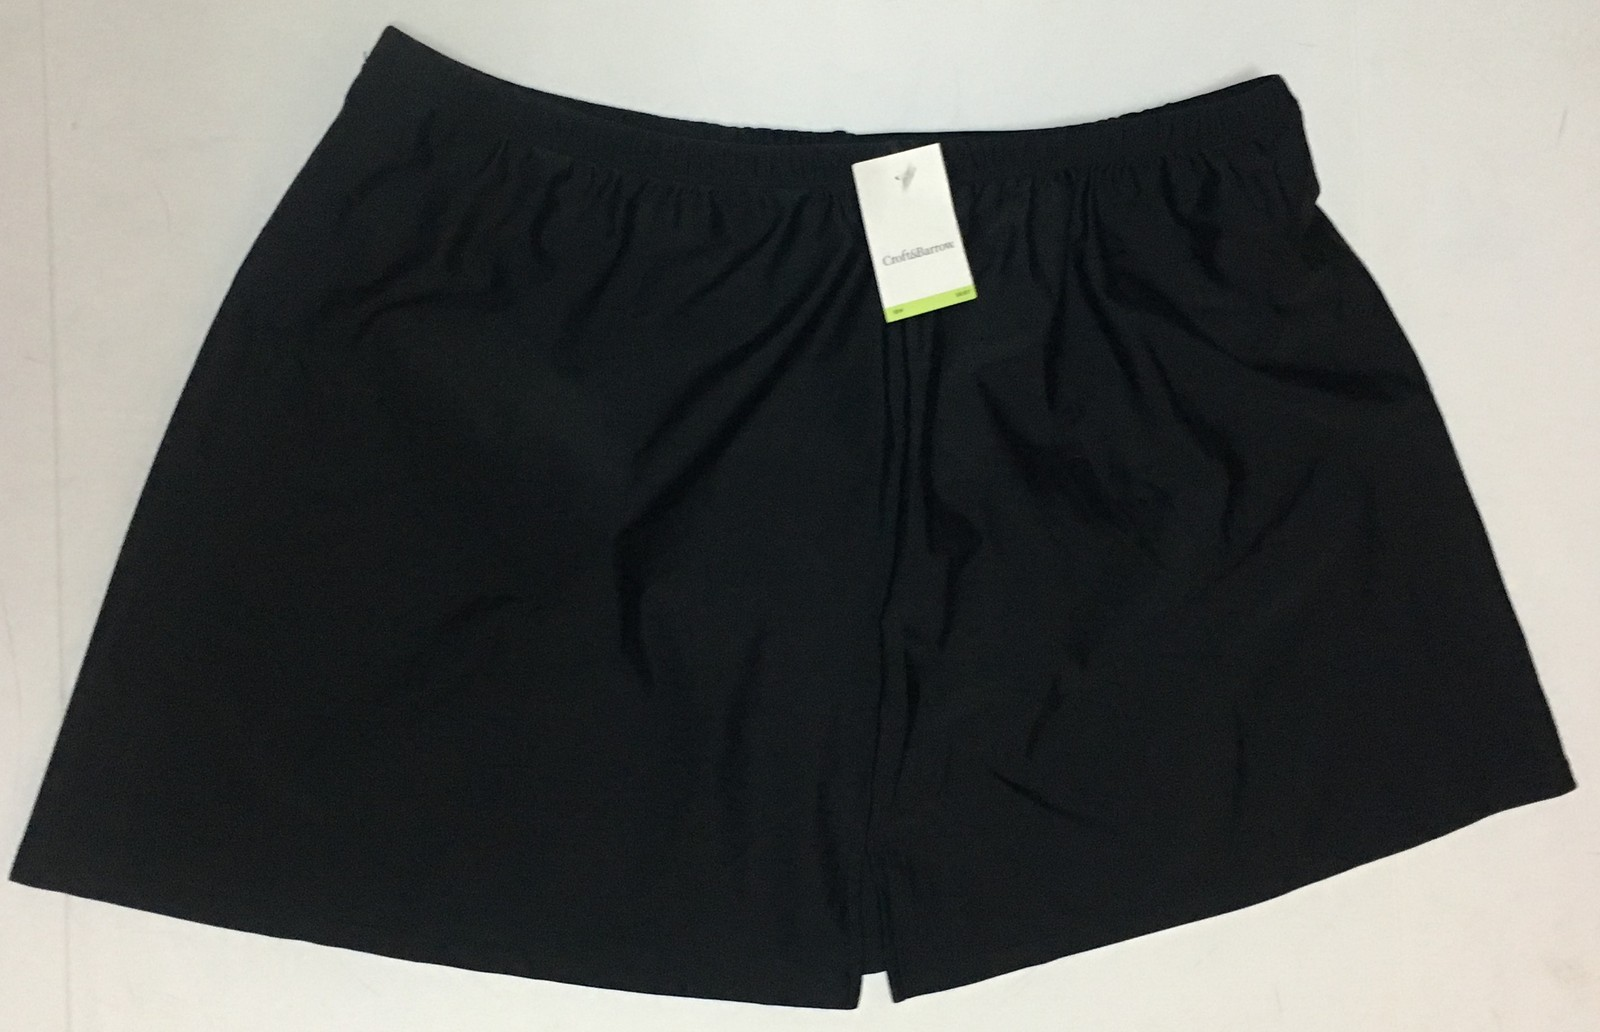 Croft & Barrow Activity Swimwear Skirt 18W Black image 2